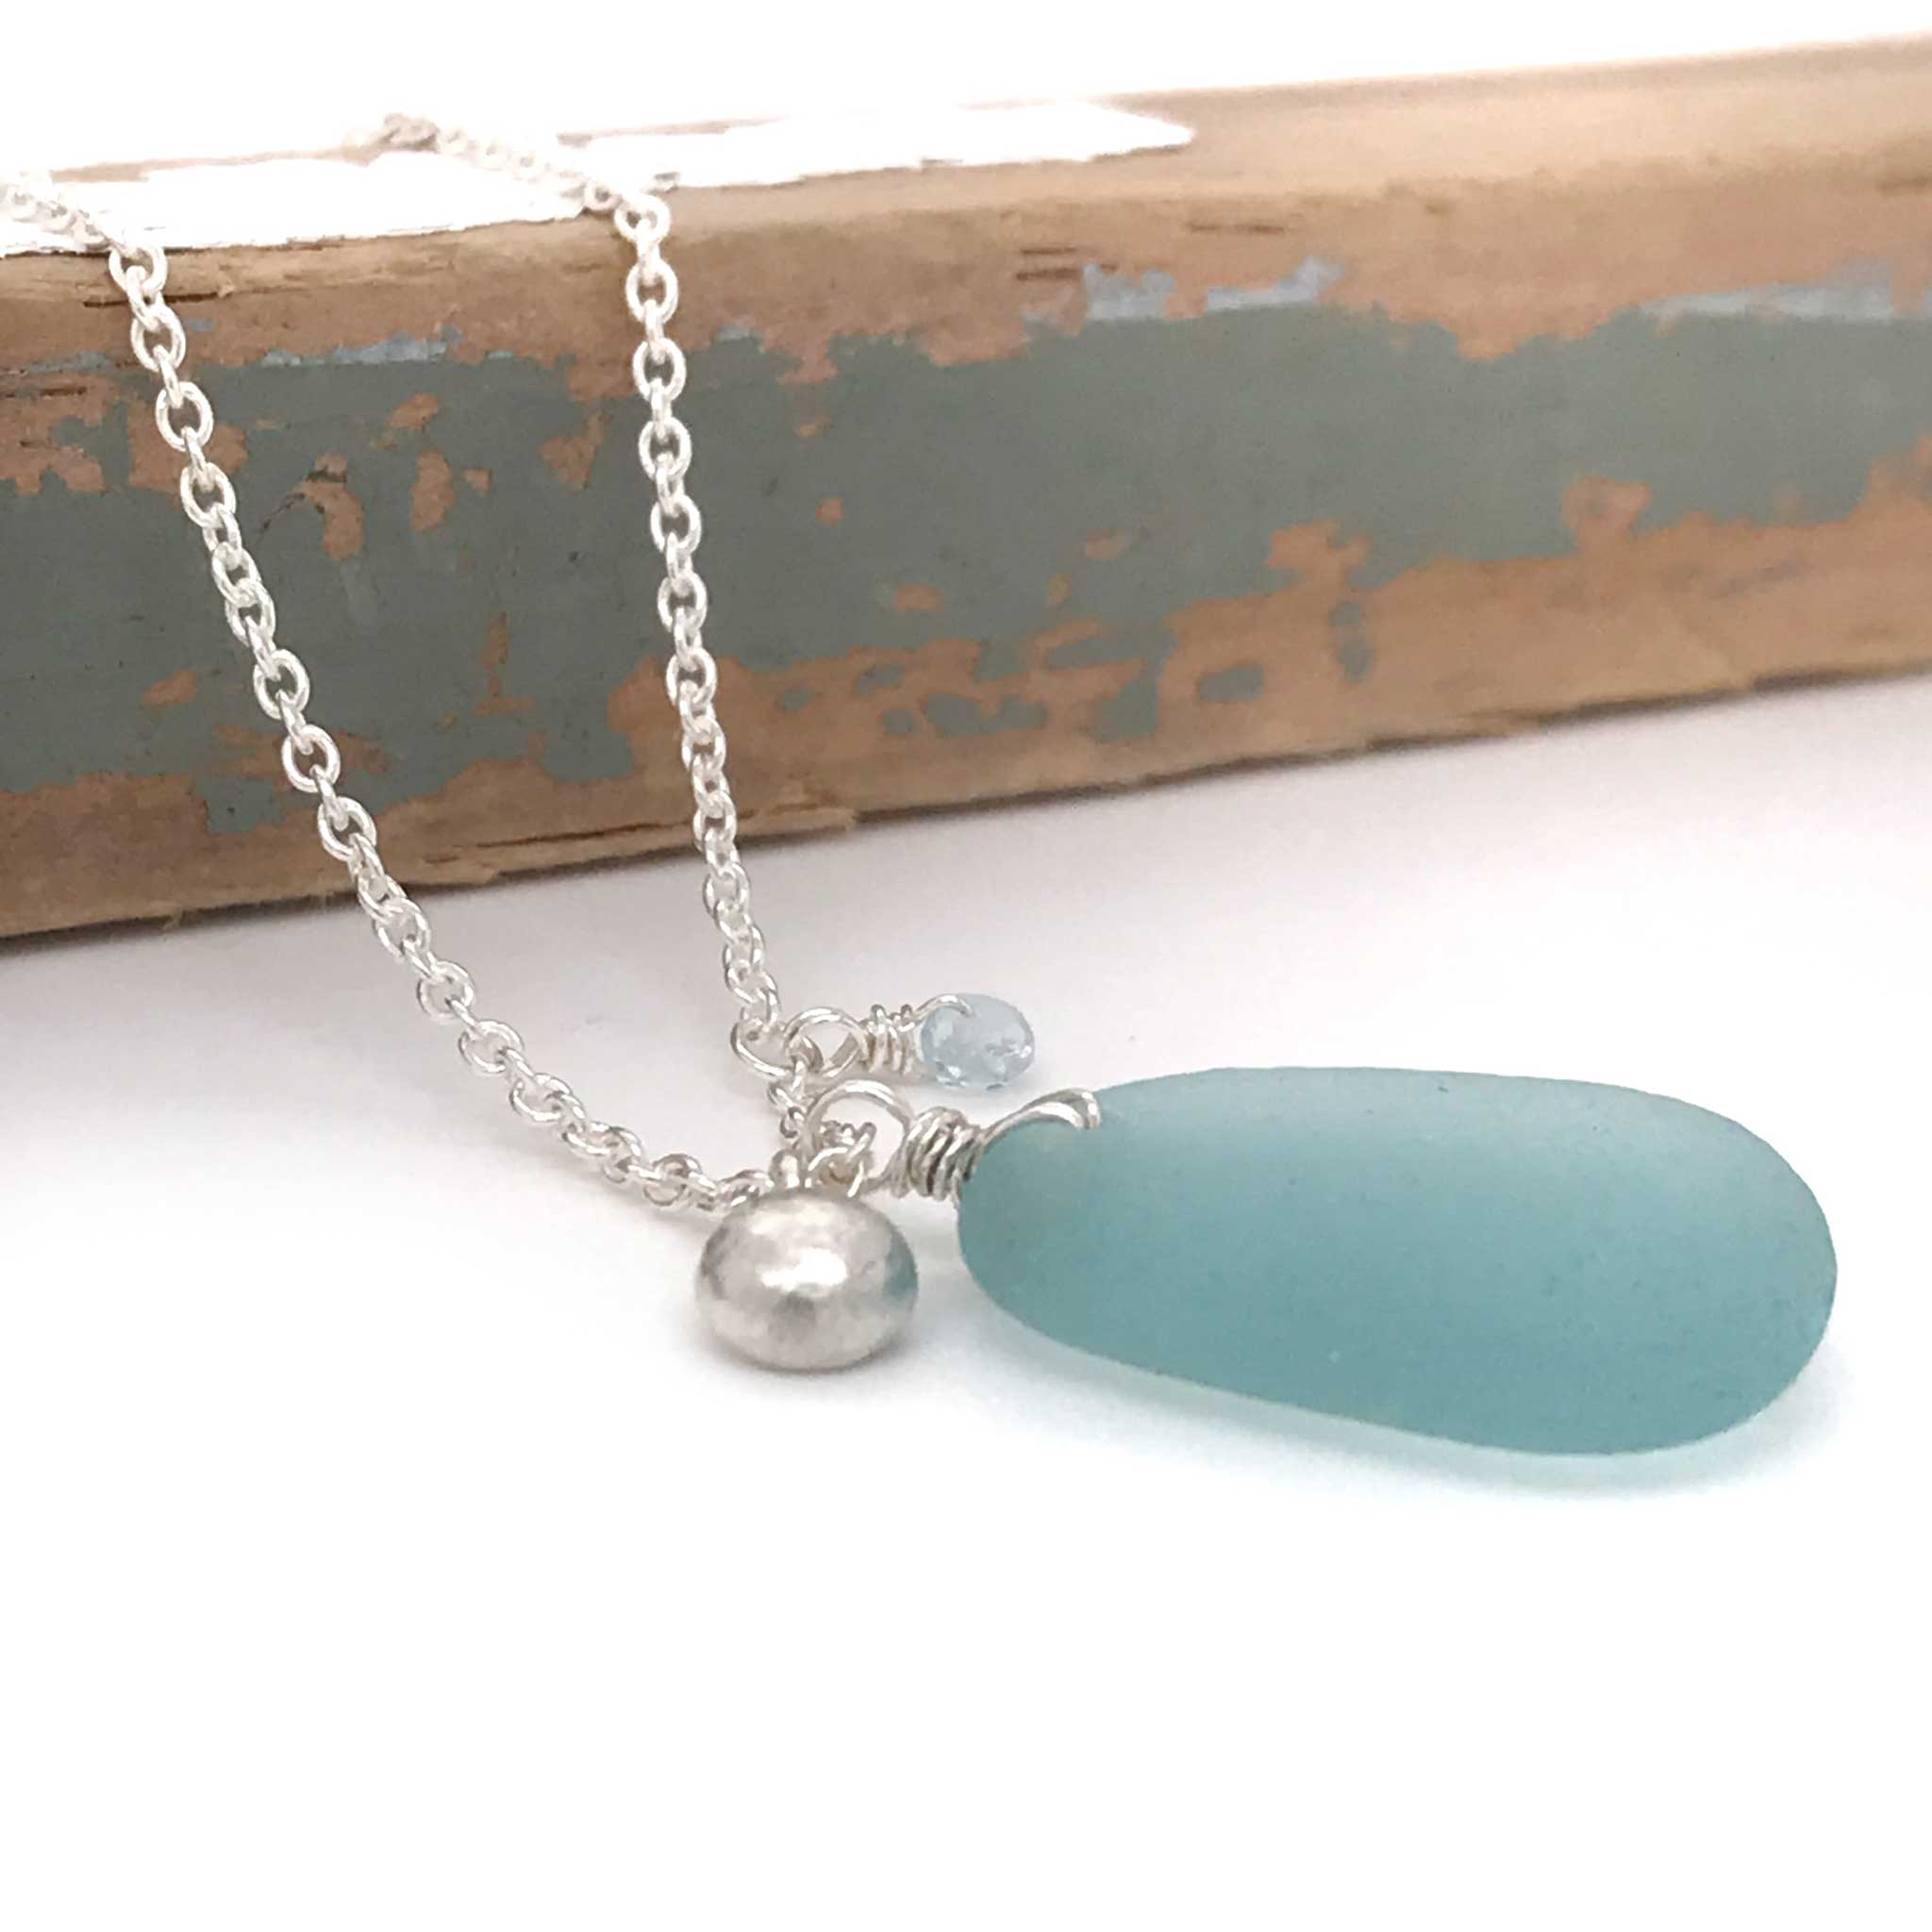 aqua blue sea glass on silver necklace with solid silver charm kriket broadhurst gifts for women Sydney